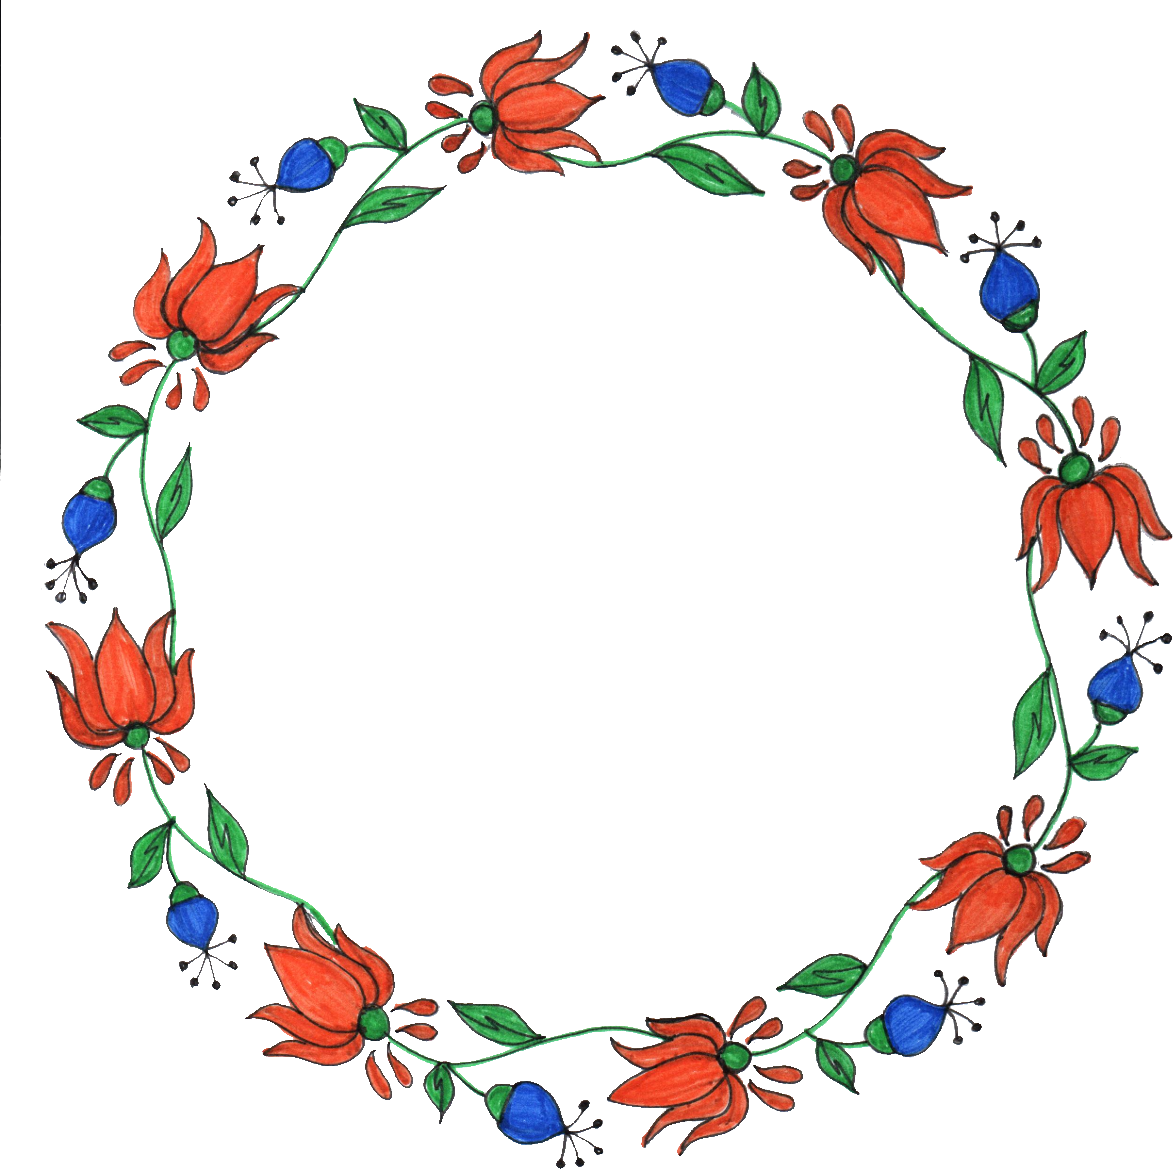 Flower Circle Line Drawing : Circle flower drawing frame png transparent onlygfx